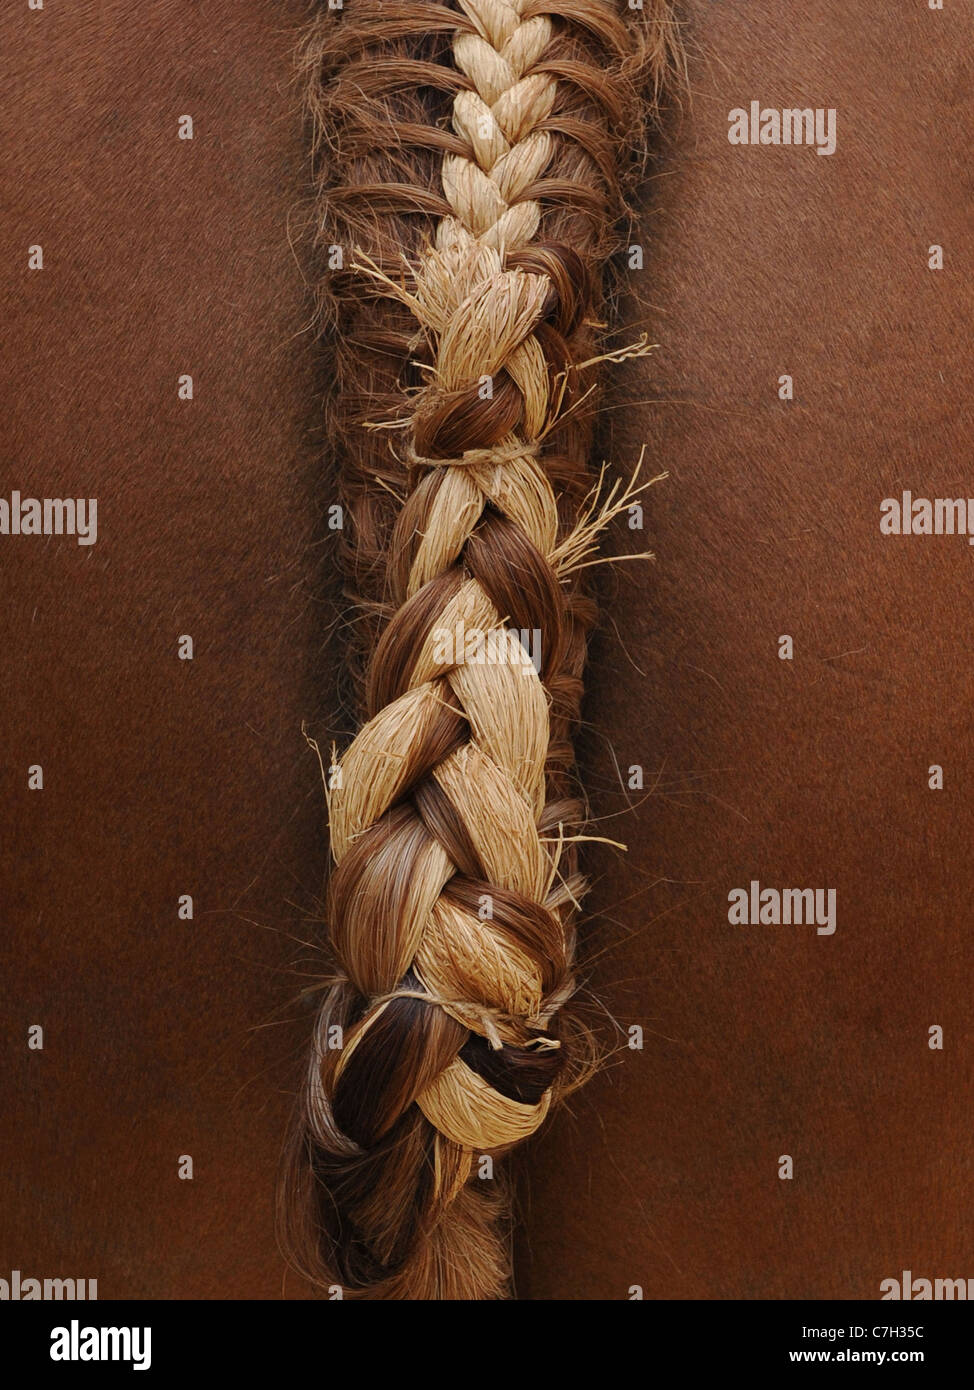 A horse's tail that has been braided and plaited by hand - Stock Image